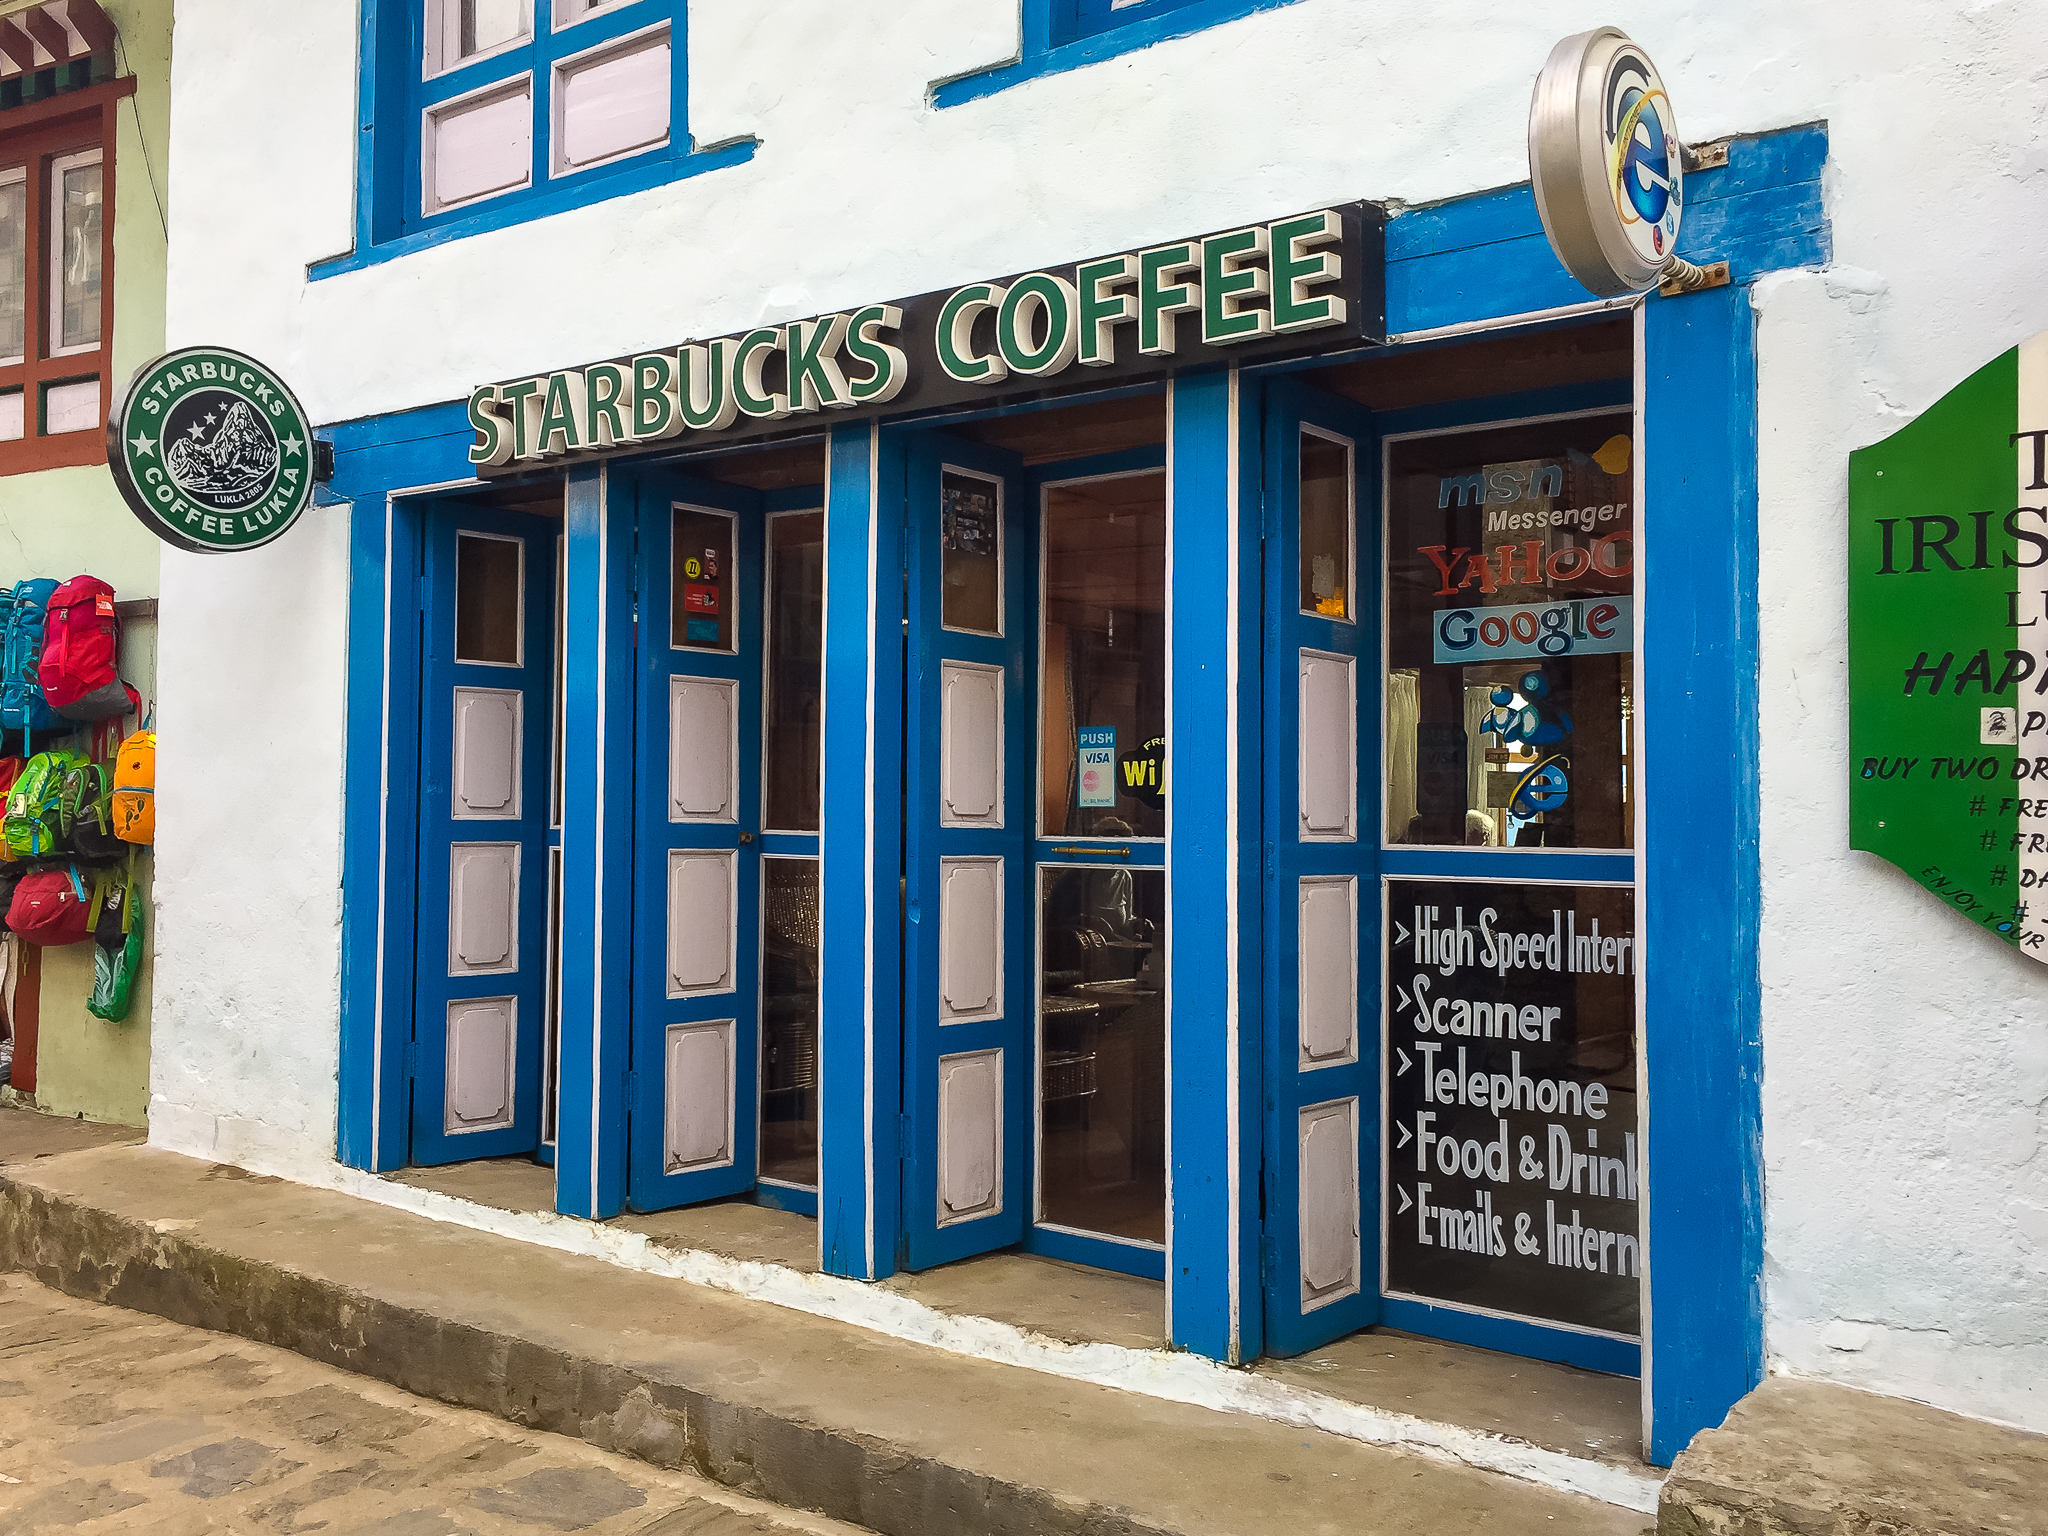 In case you haven't noticed, this isn't actually a real Starbucks~